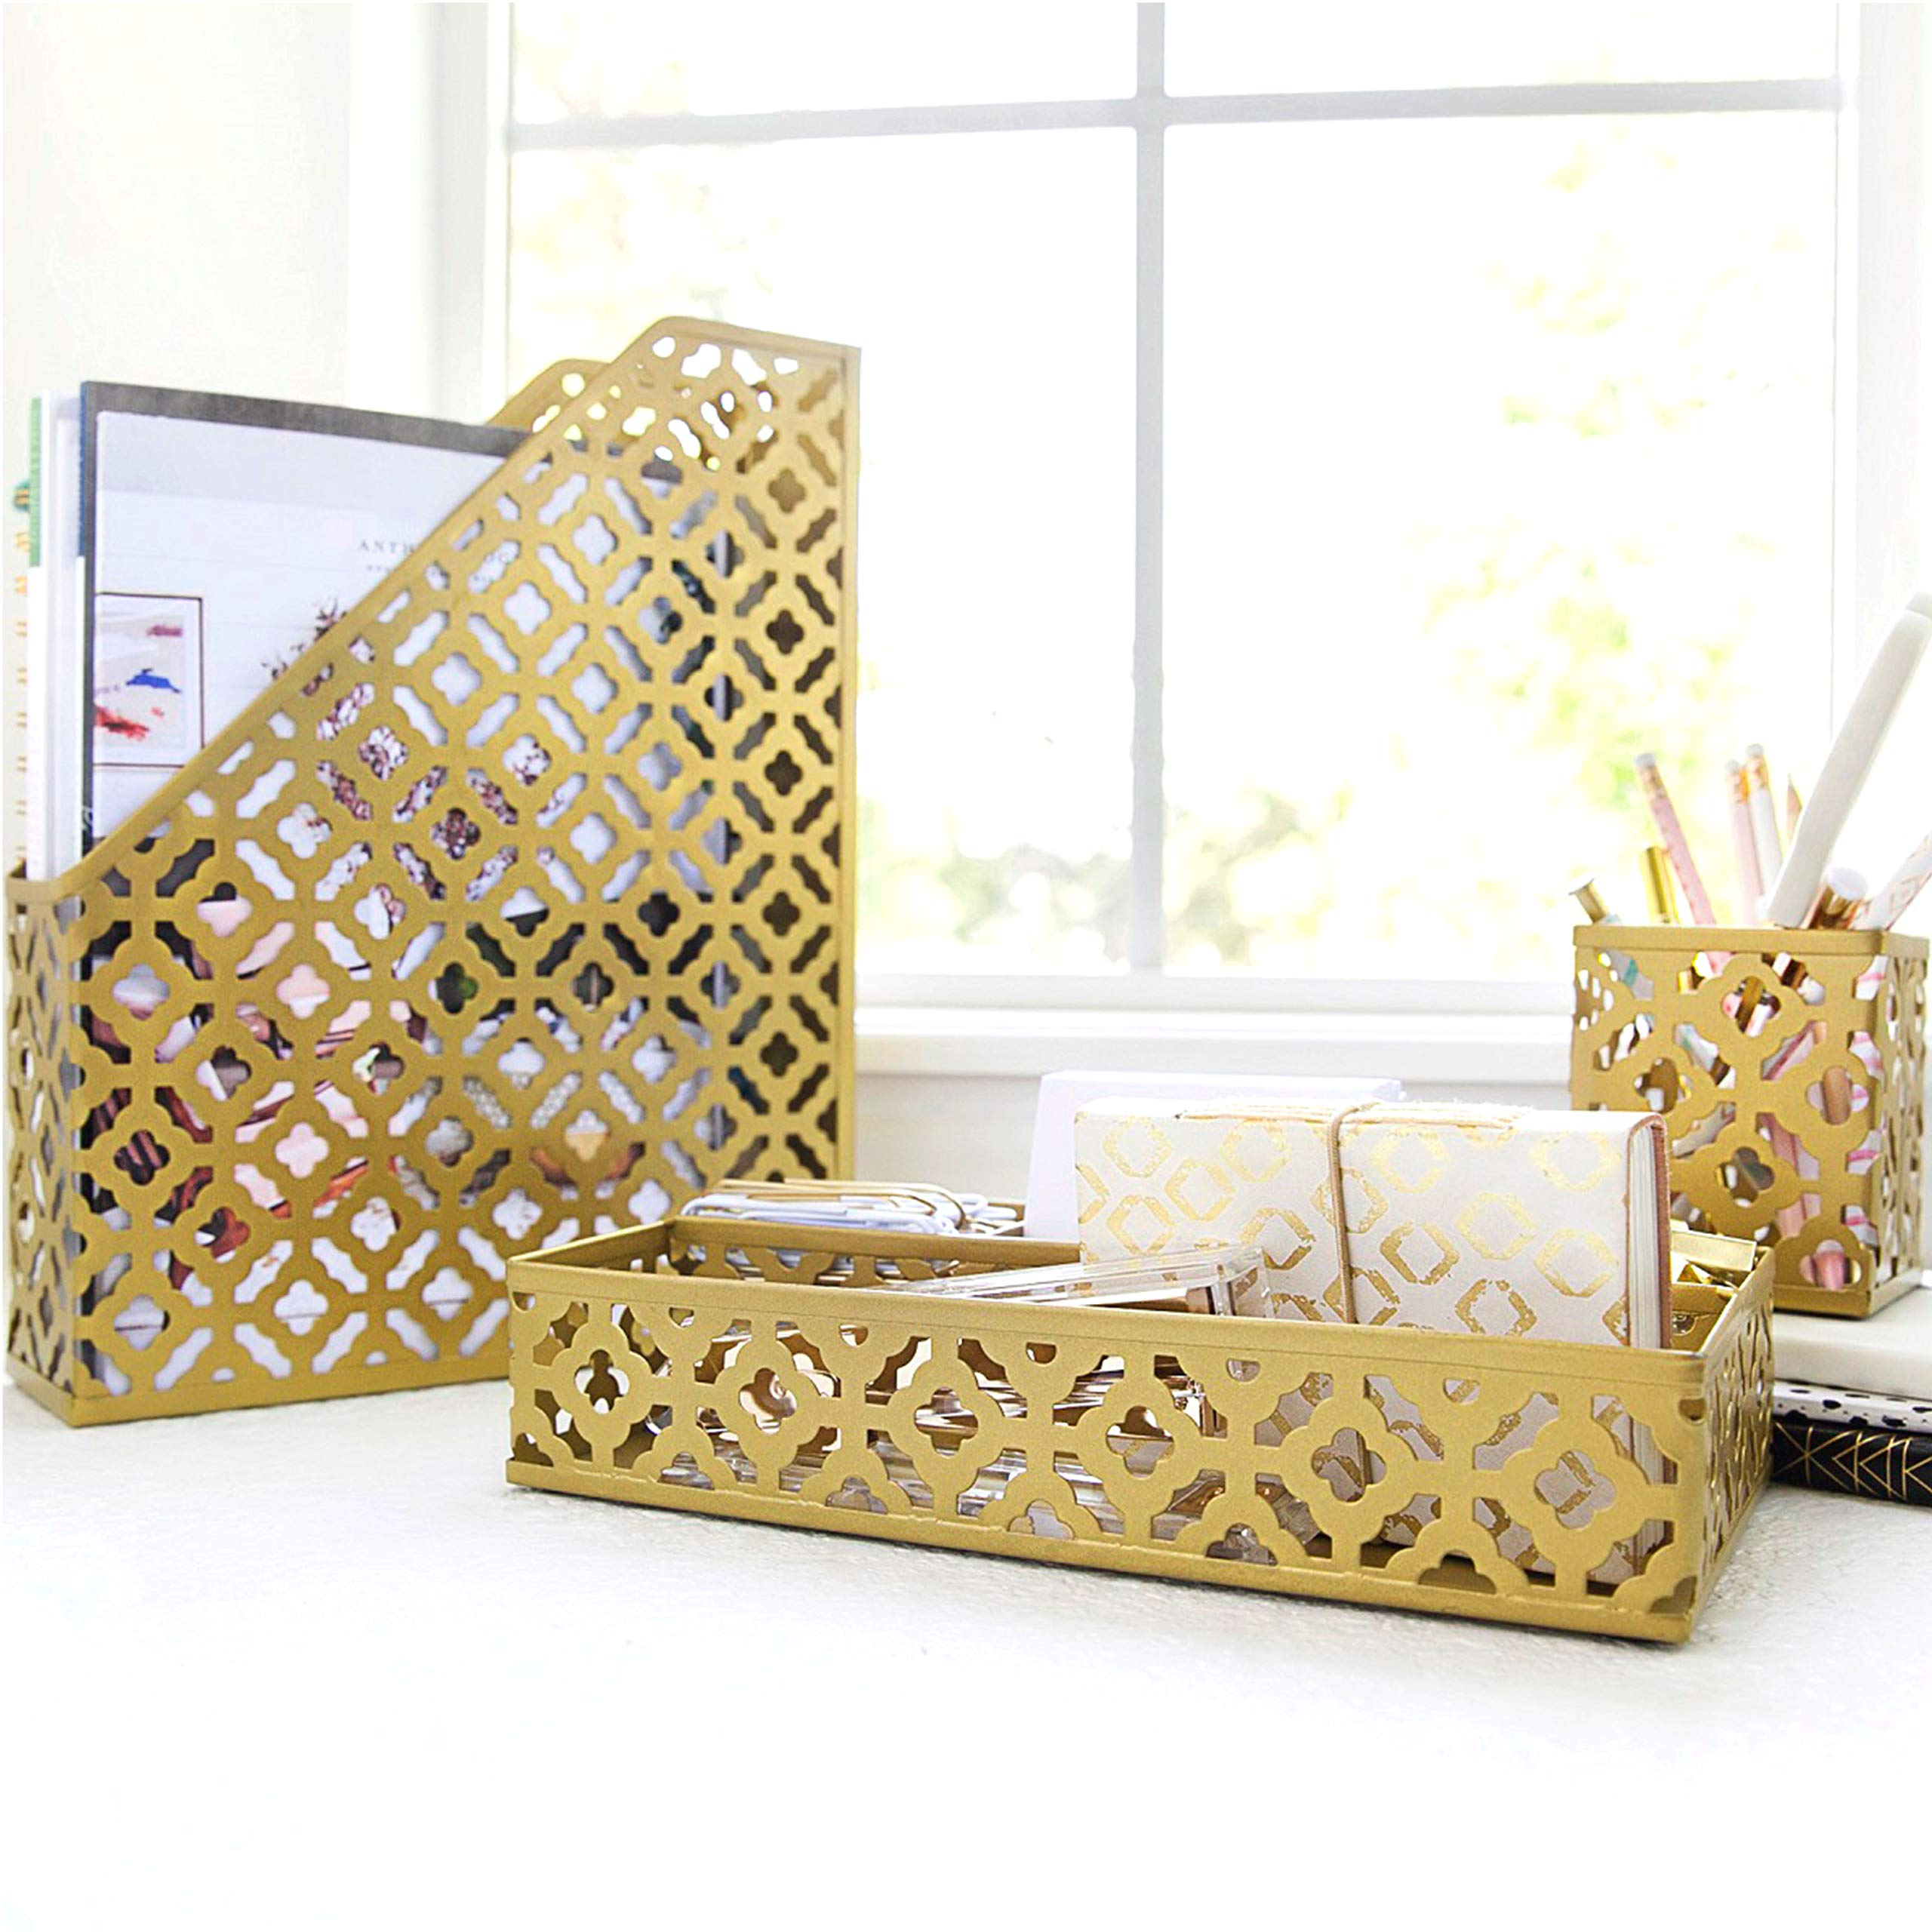 Blu Monaco Gold Desk Organizer for Women - 3 Piece Desk Accessories Set - Pen Cup, Magazine-File-Mail Holder, and Accessories Tray - Antique Gold Brass Finish Office Supplies Stationery Decor by Blu Monaco (Image #2)